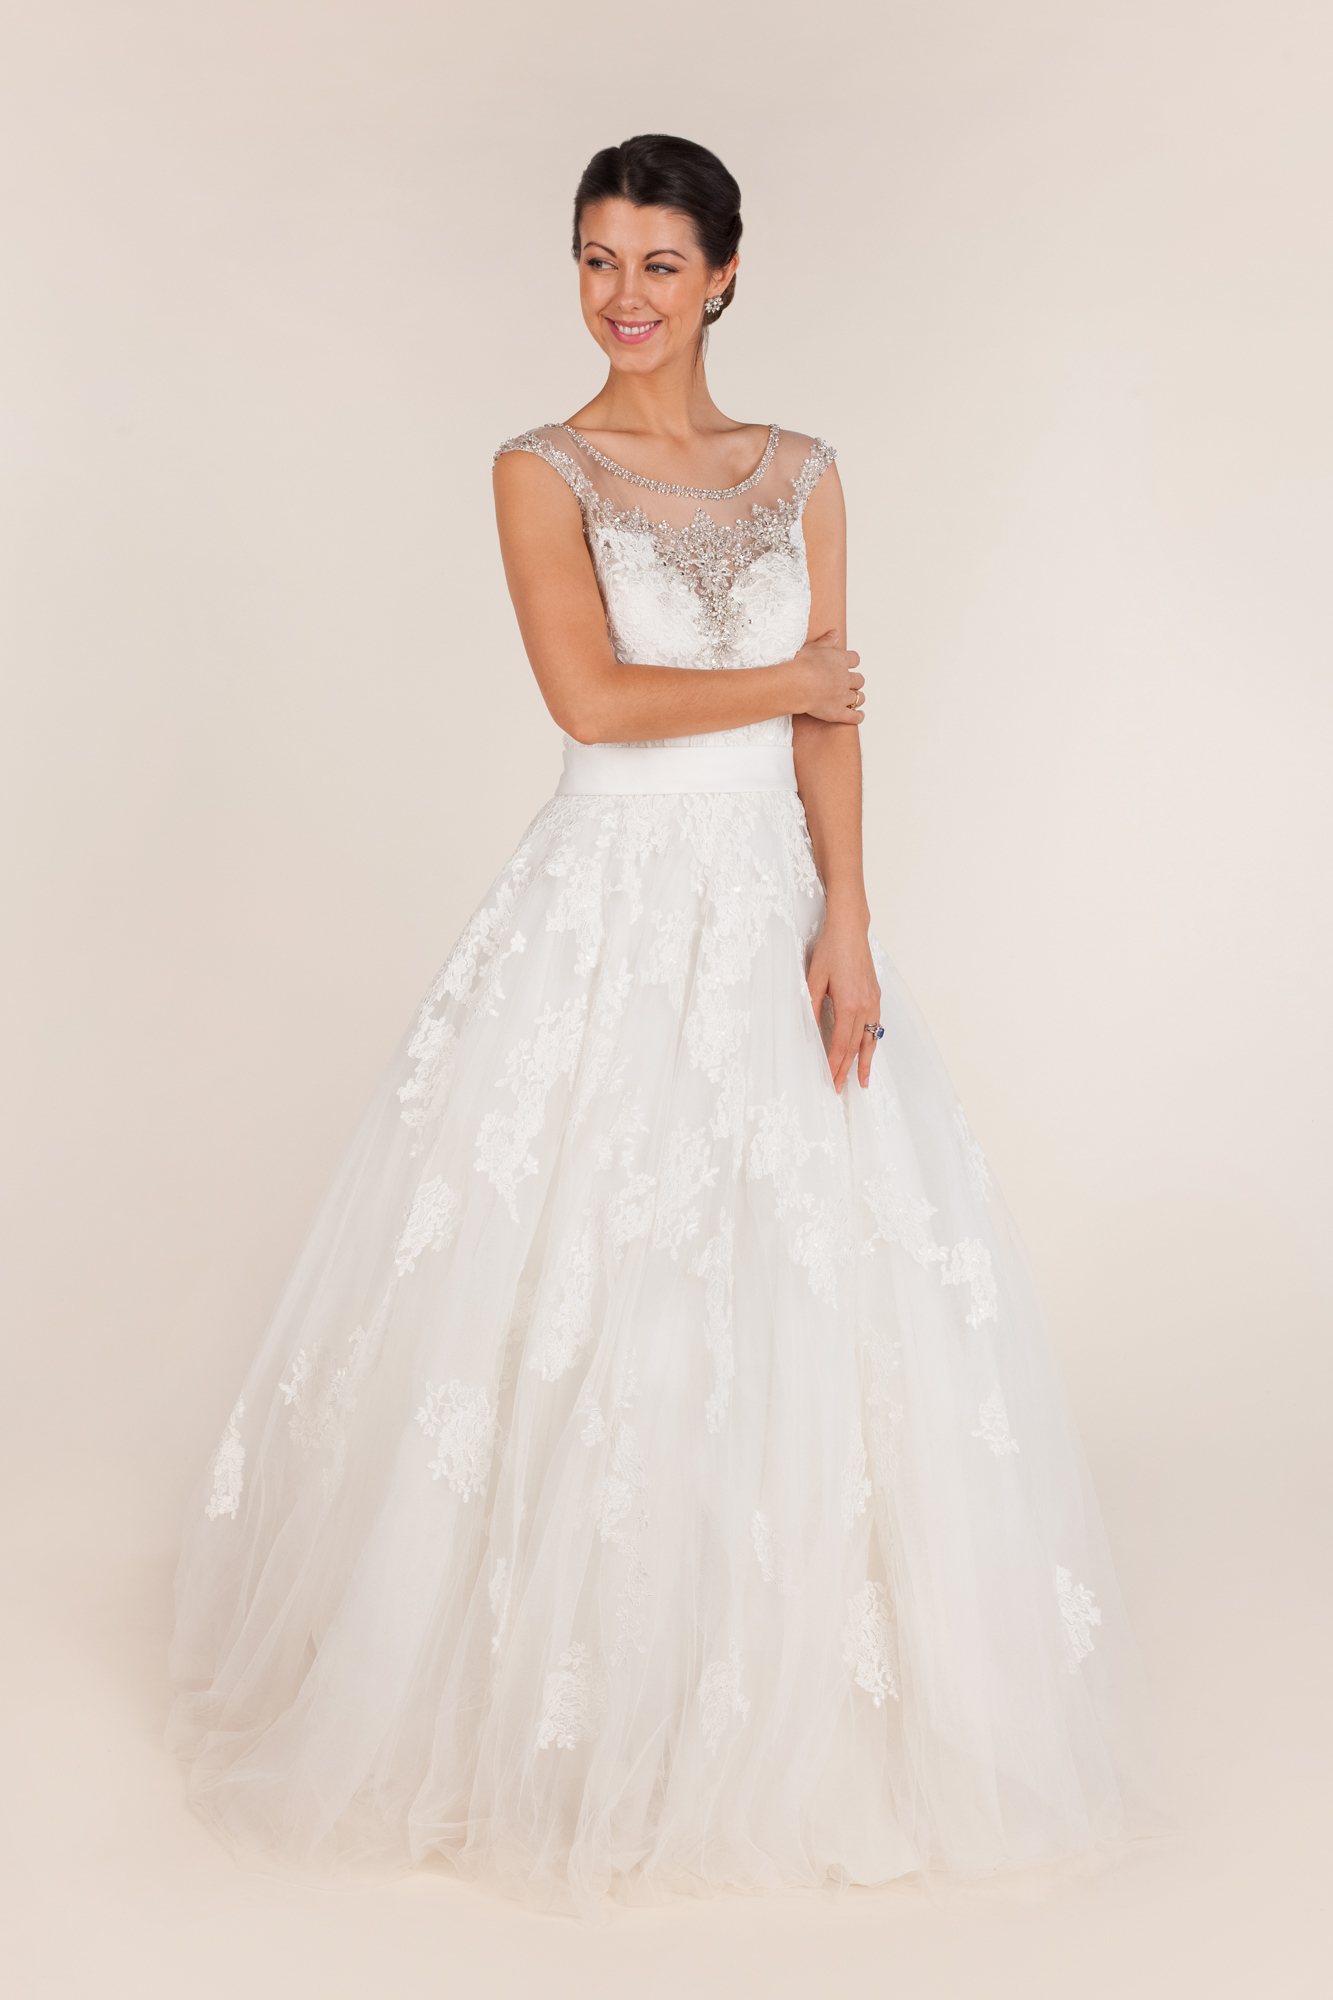 Allure bridals - 9114 size  - $650 - (59% OFF)